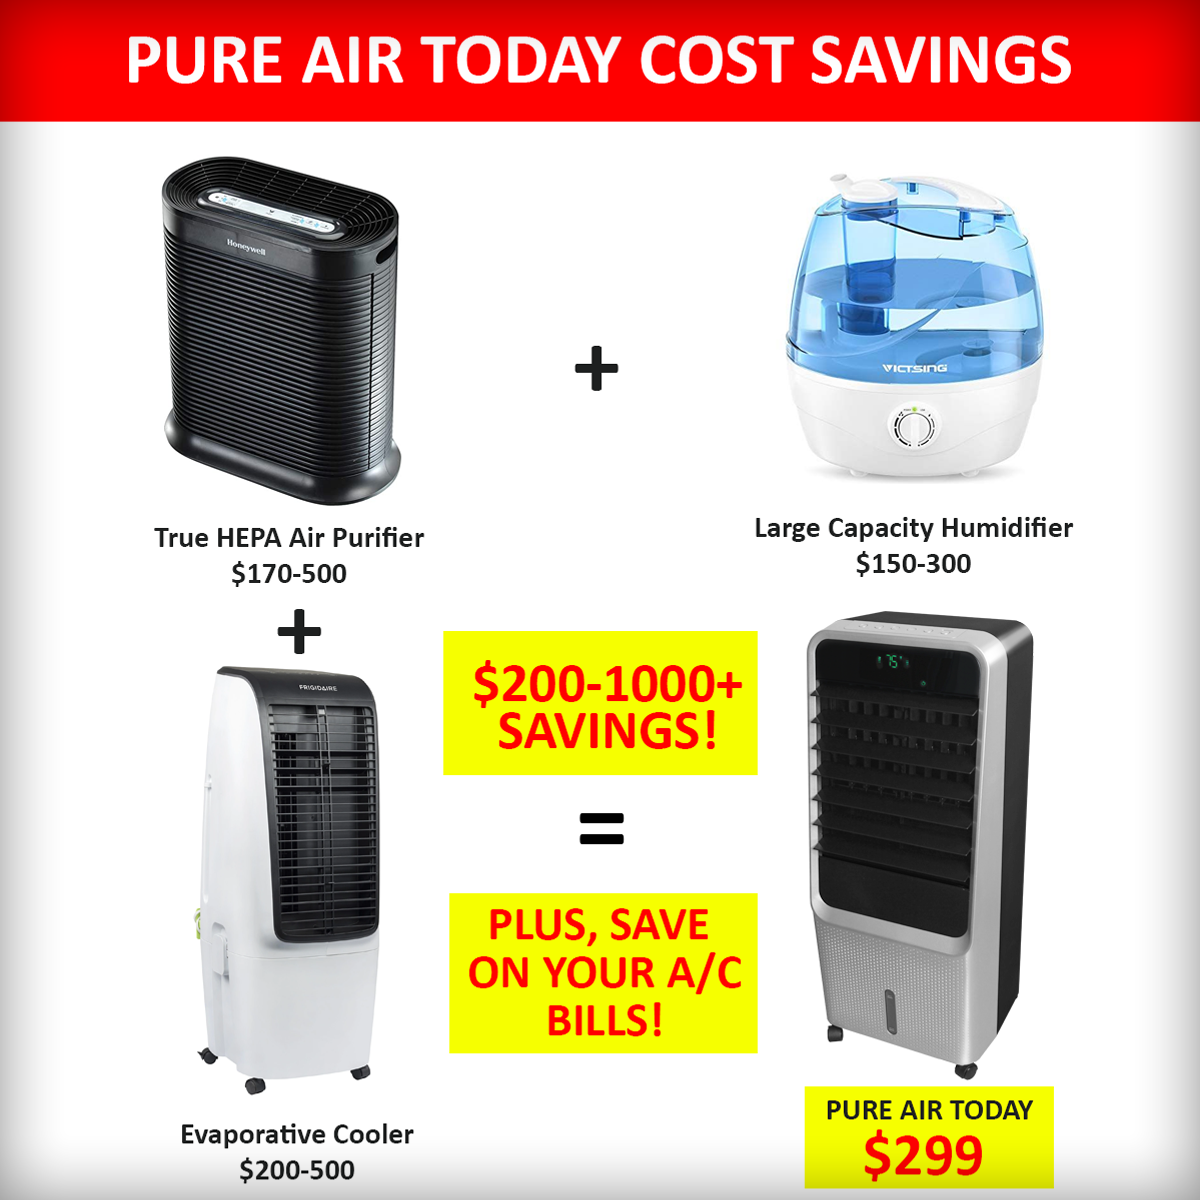 Cost savings with Pure Air Today